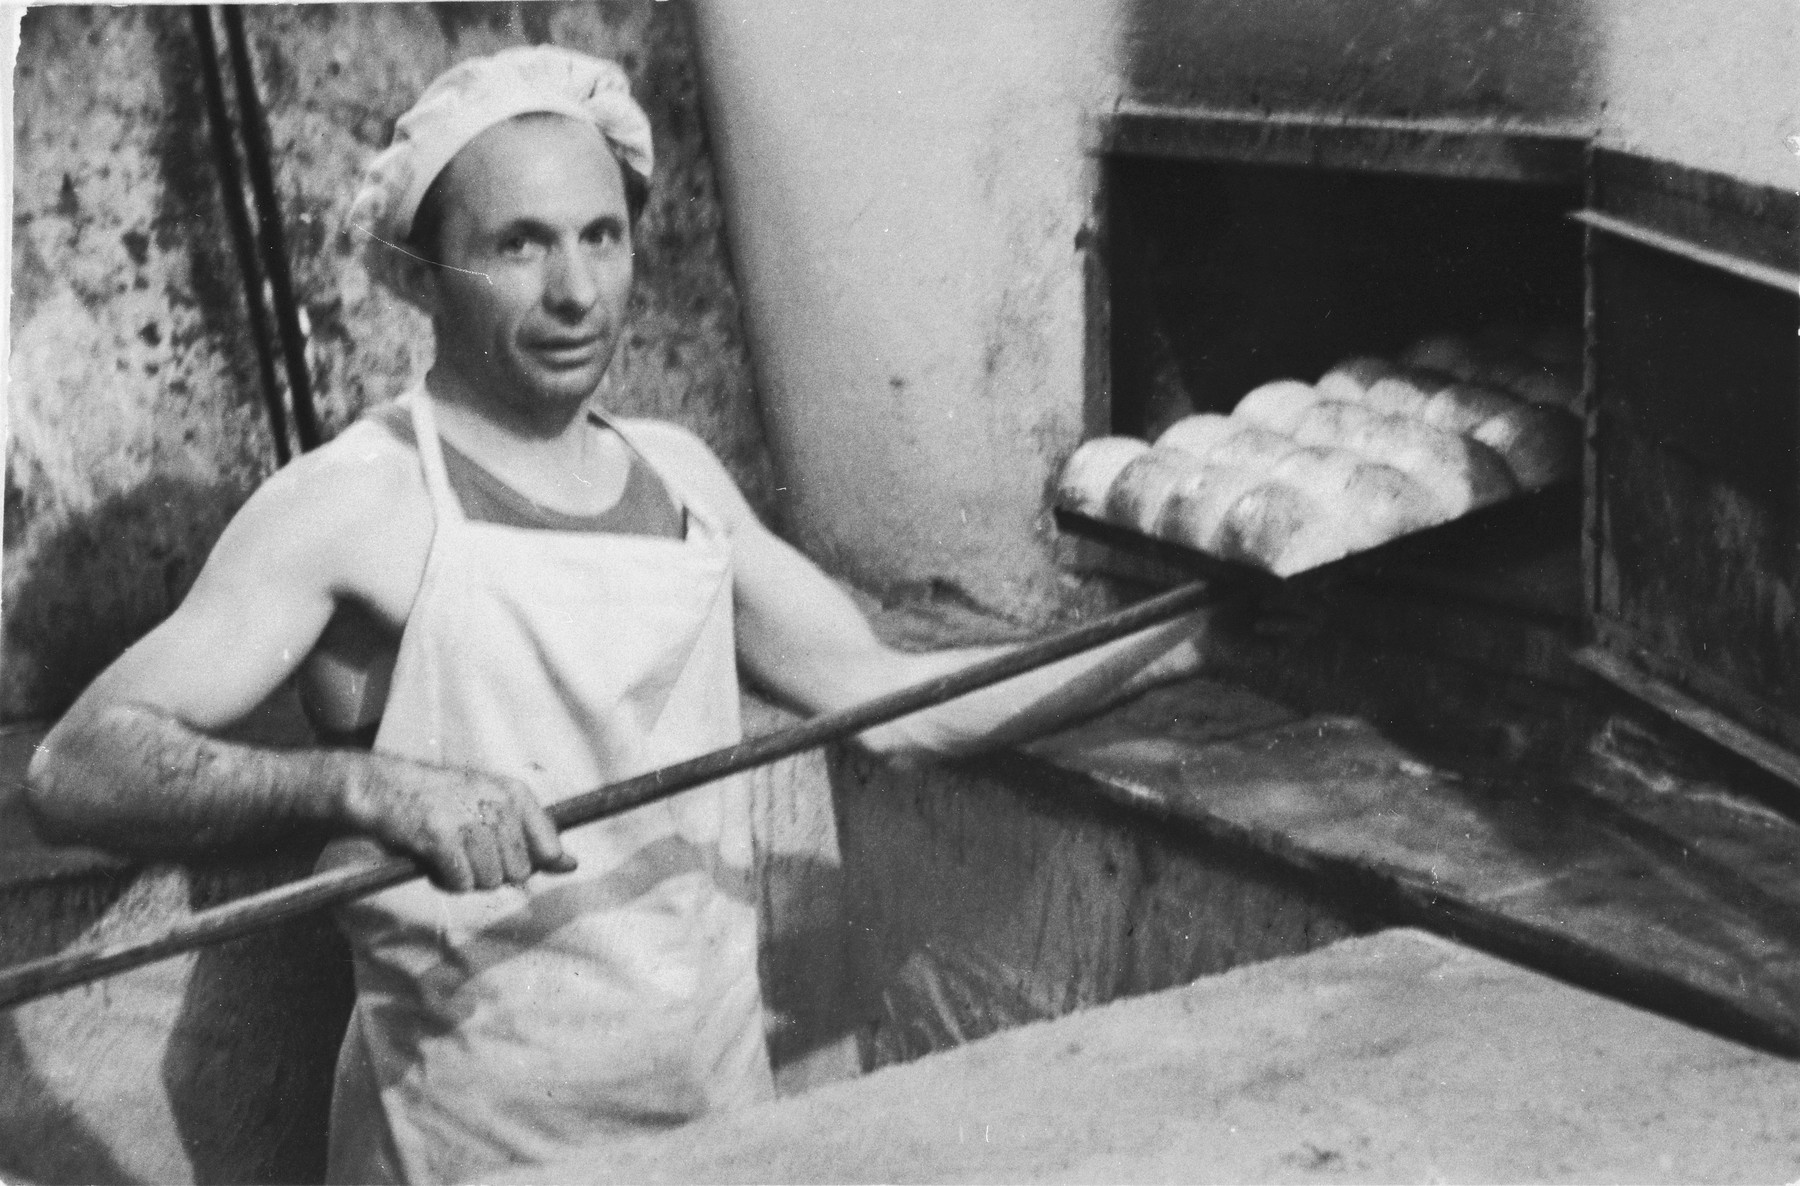 J. Weisblum removes a tray of breads from the oven at the Bindermichl displaced persons camp.